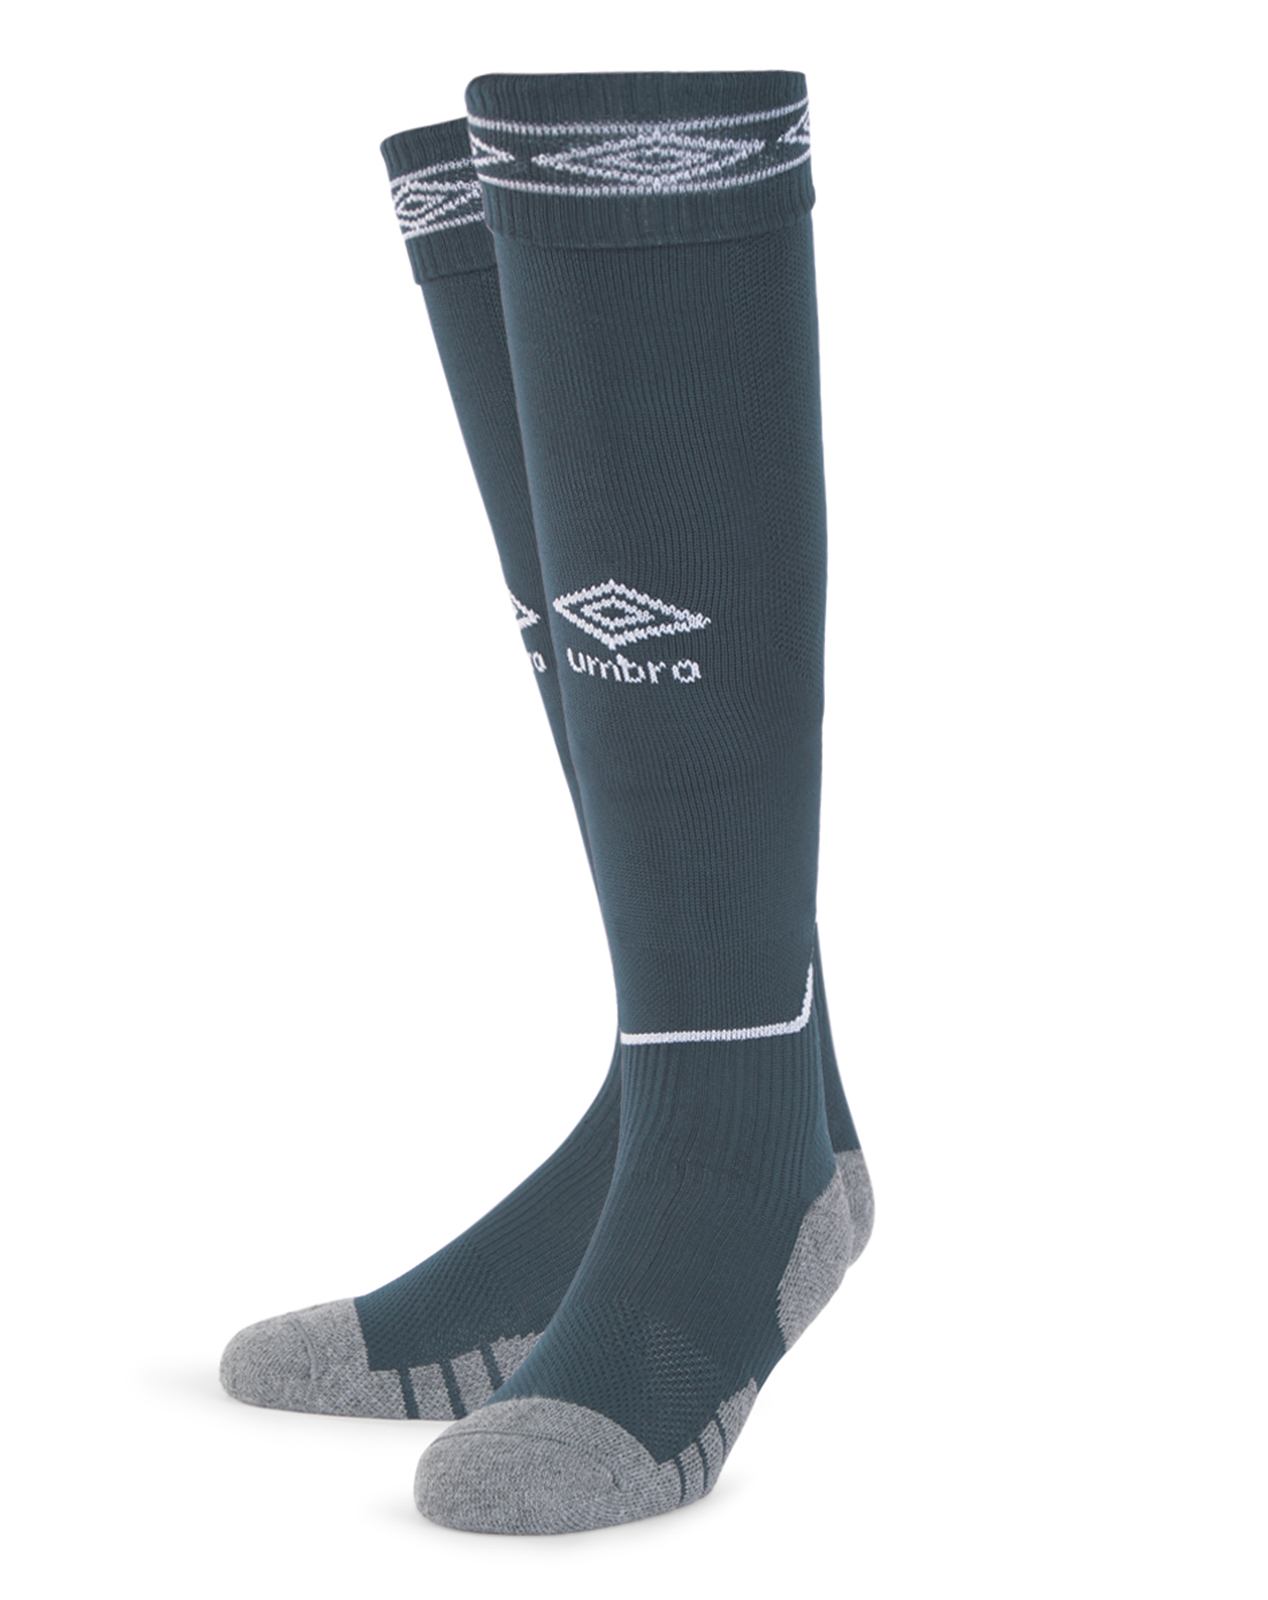 Umbro Diamond Top Socks in carbon with white Diamond turnover design